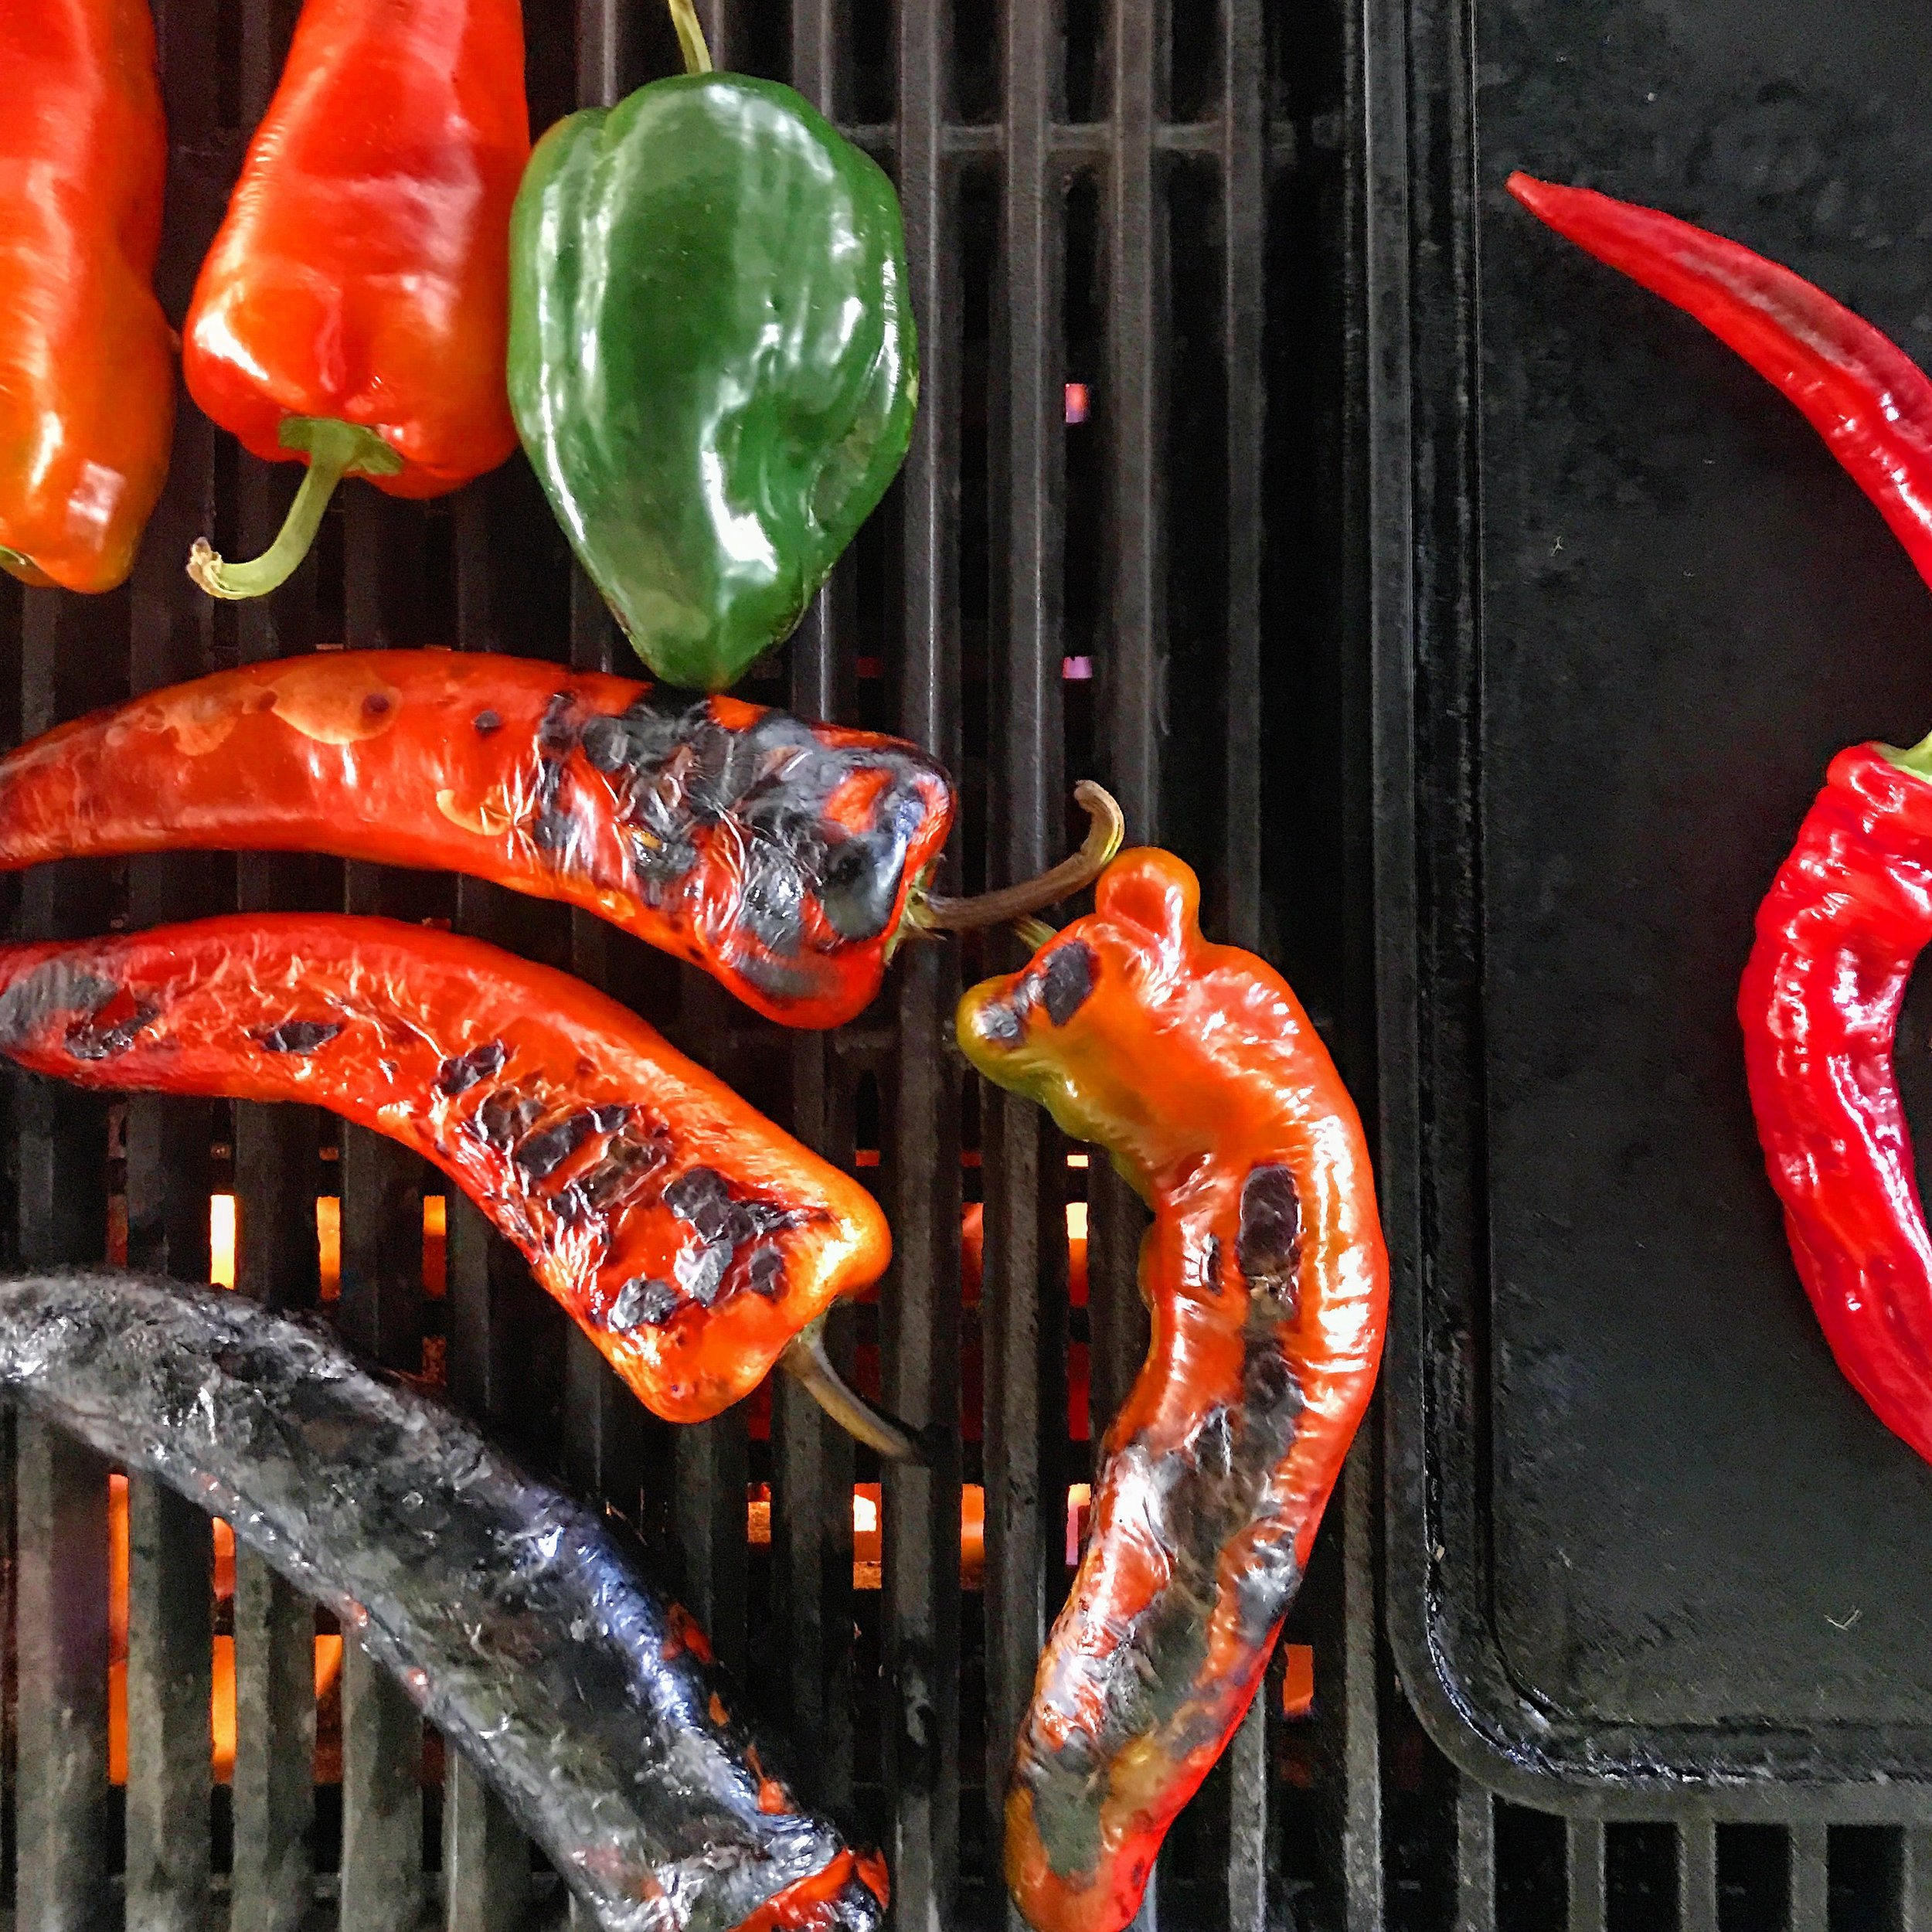 grilling peppers.jpg